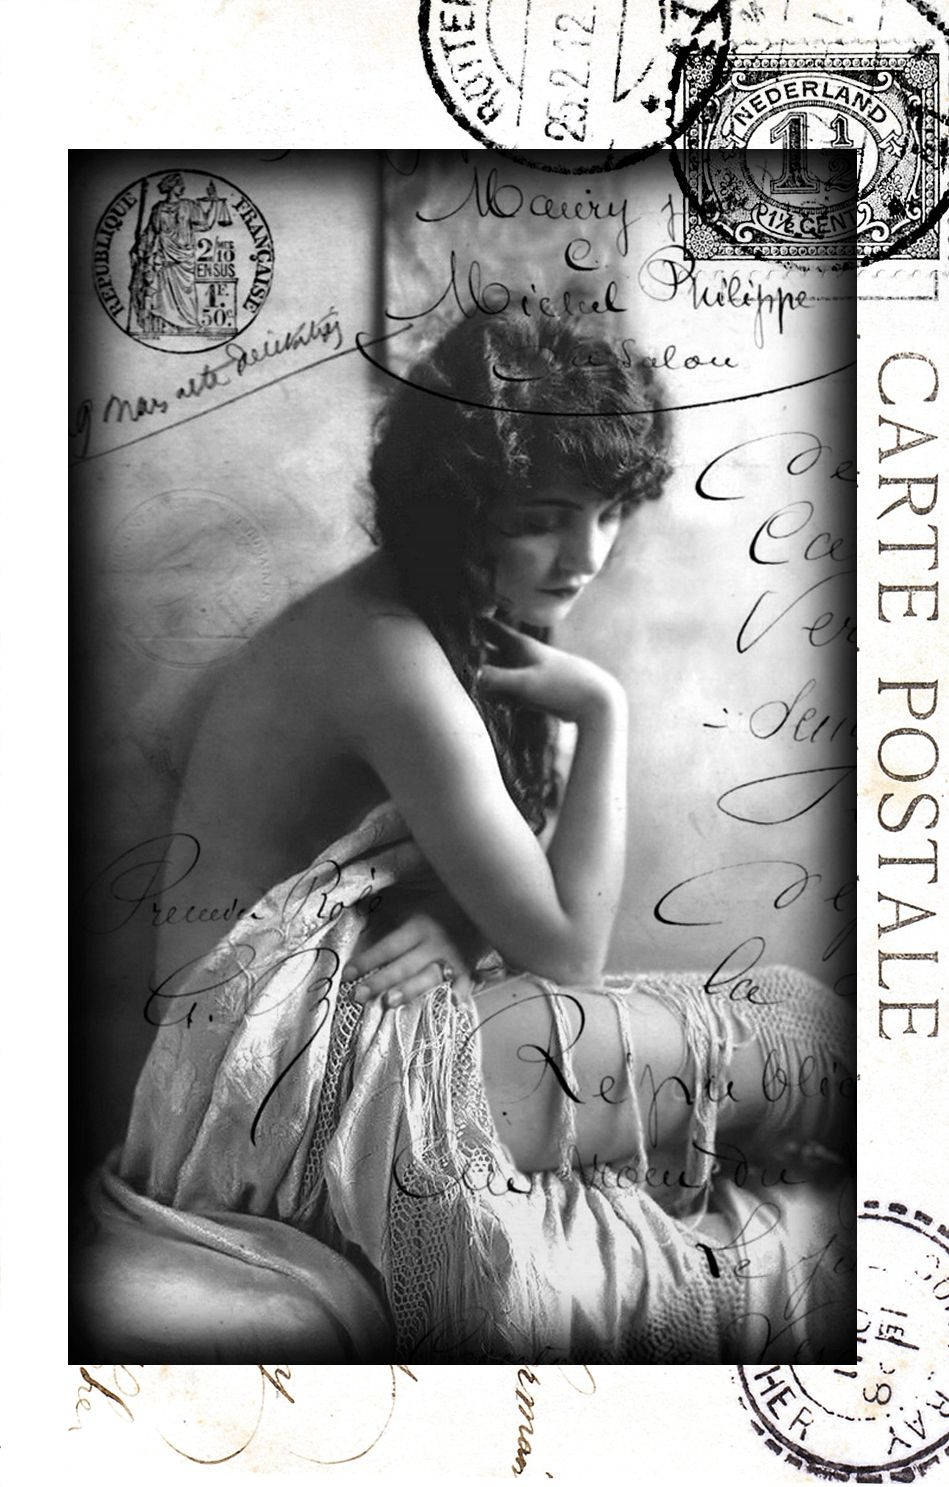 FREE IMAGES & A VINTAGE CARD TUTORIAL